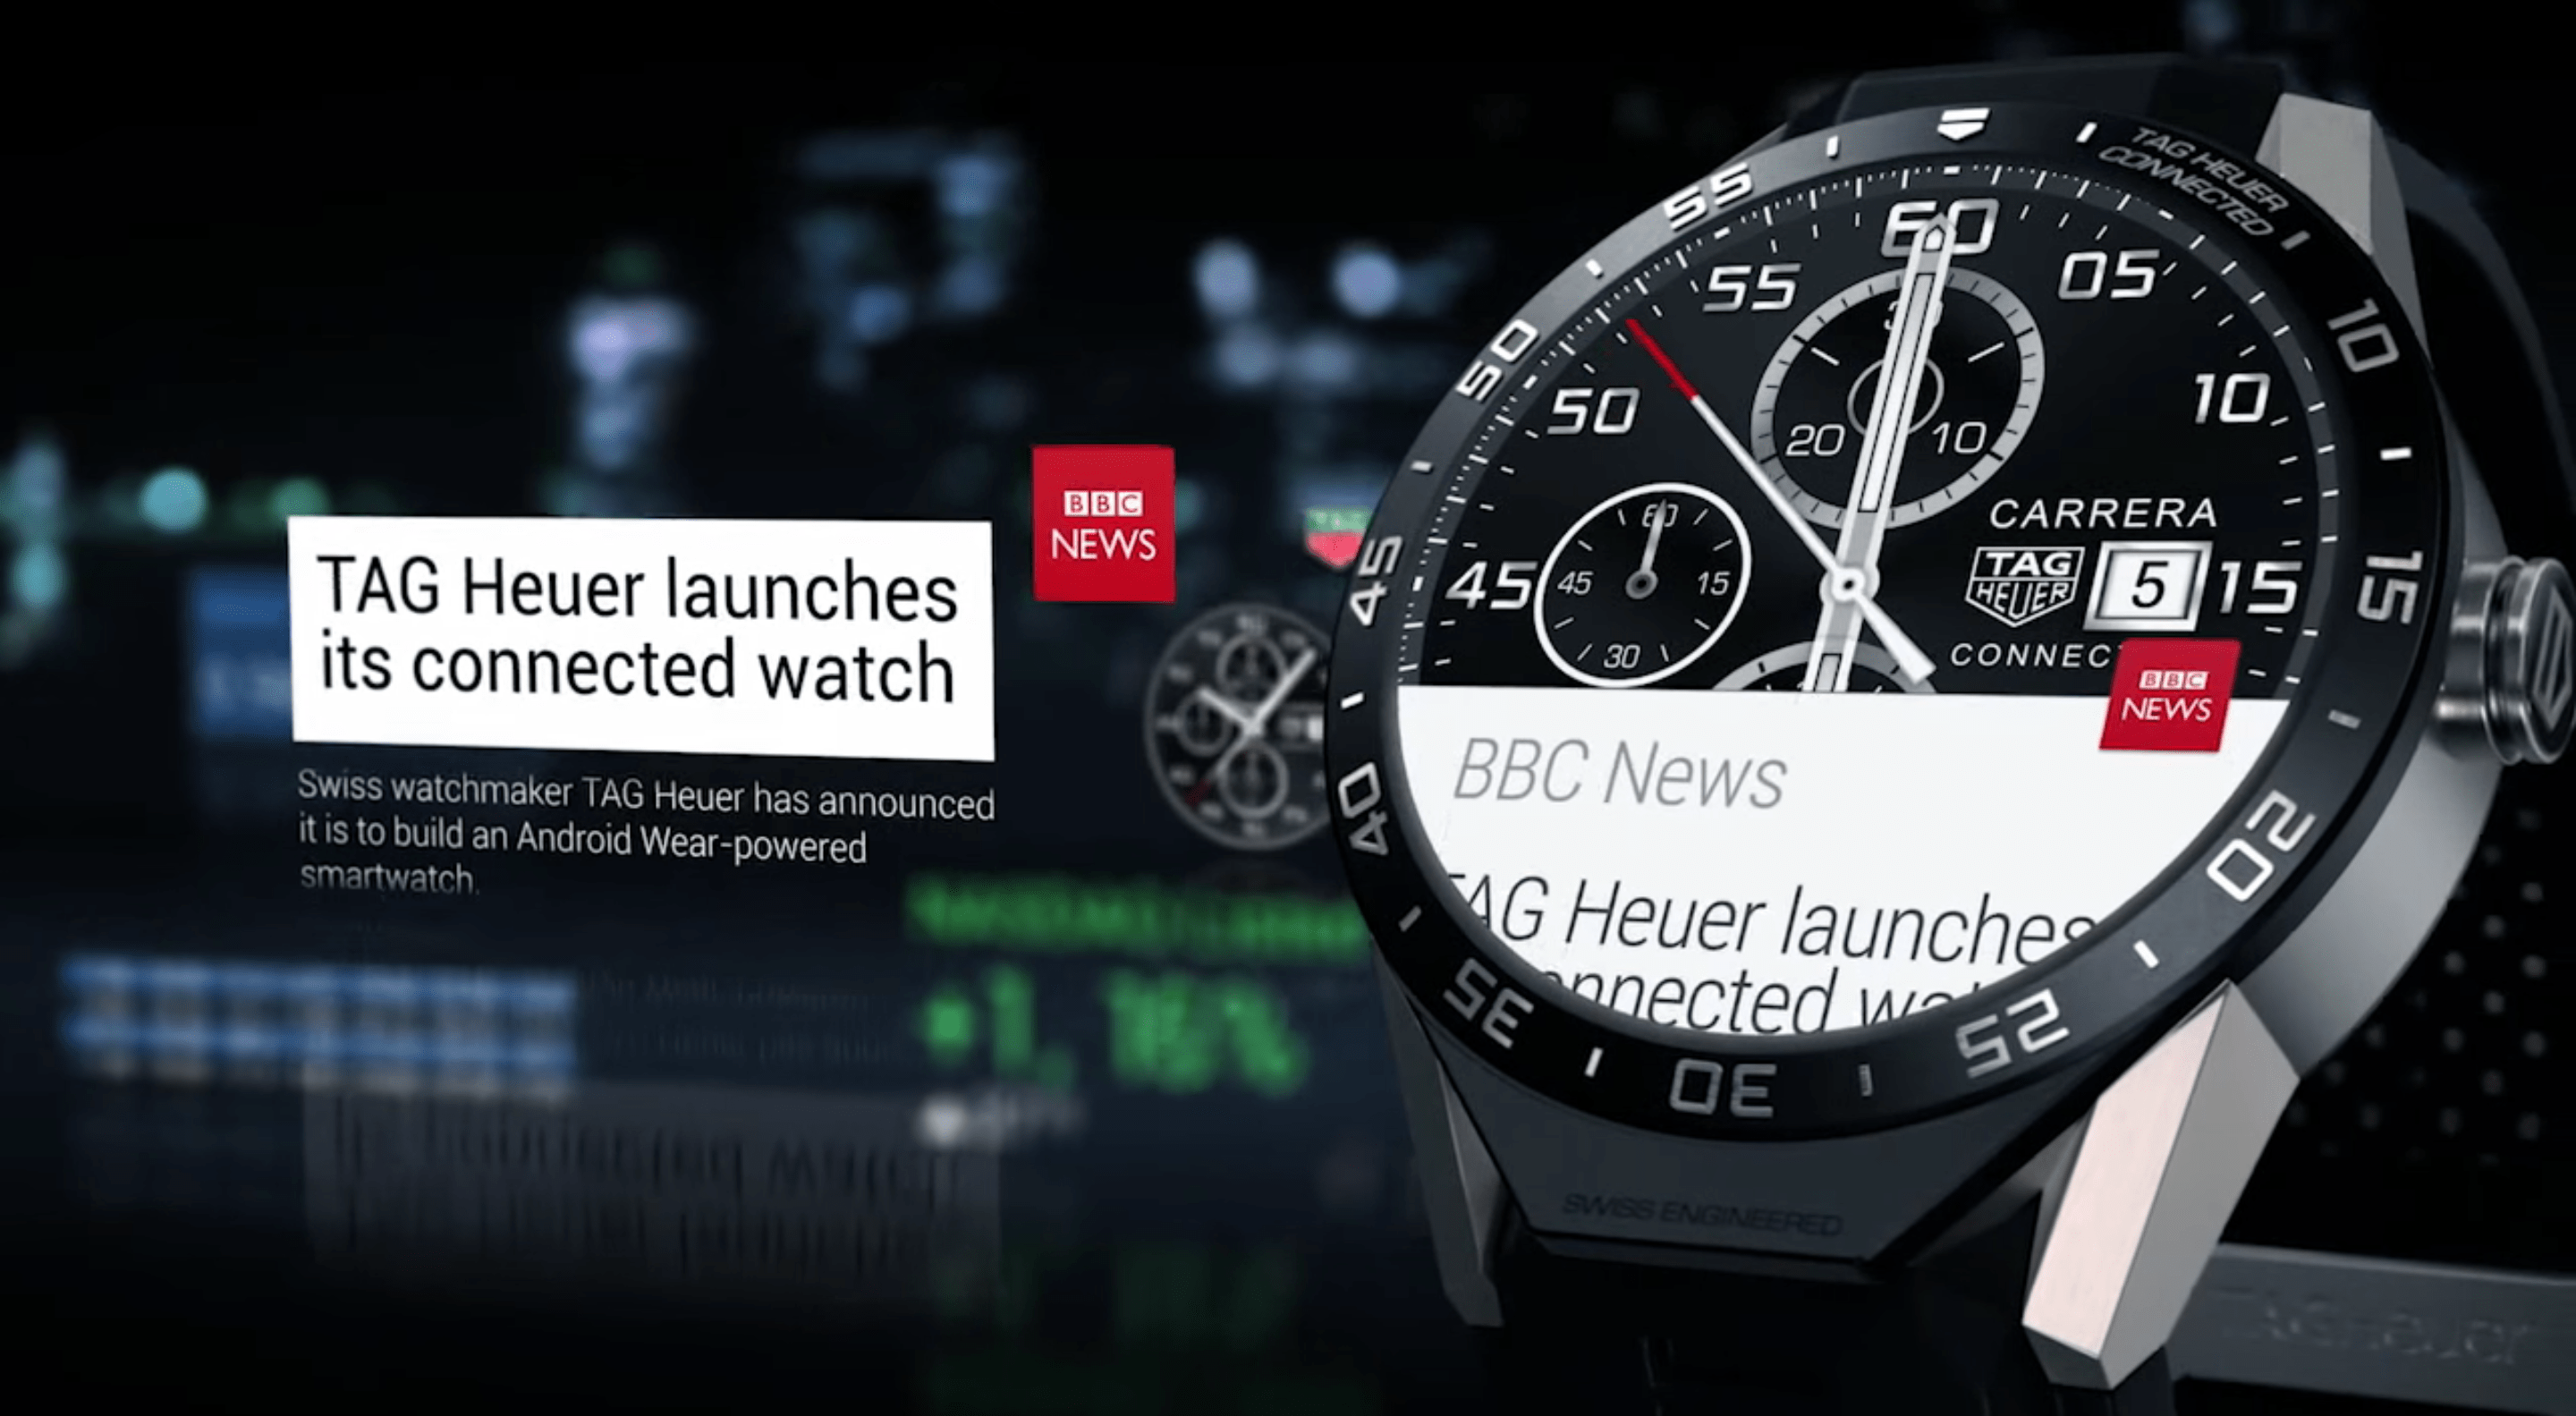 You can even read the news on your Tag Heuer Connected Watch. You can choose to get notifications from, say, BBC News.